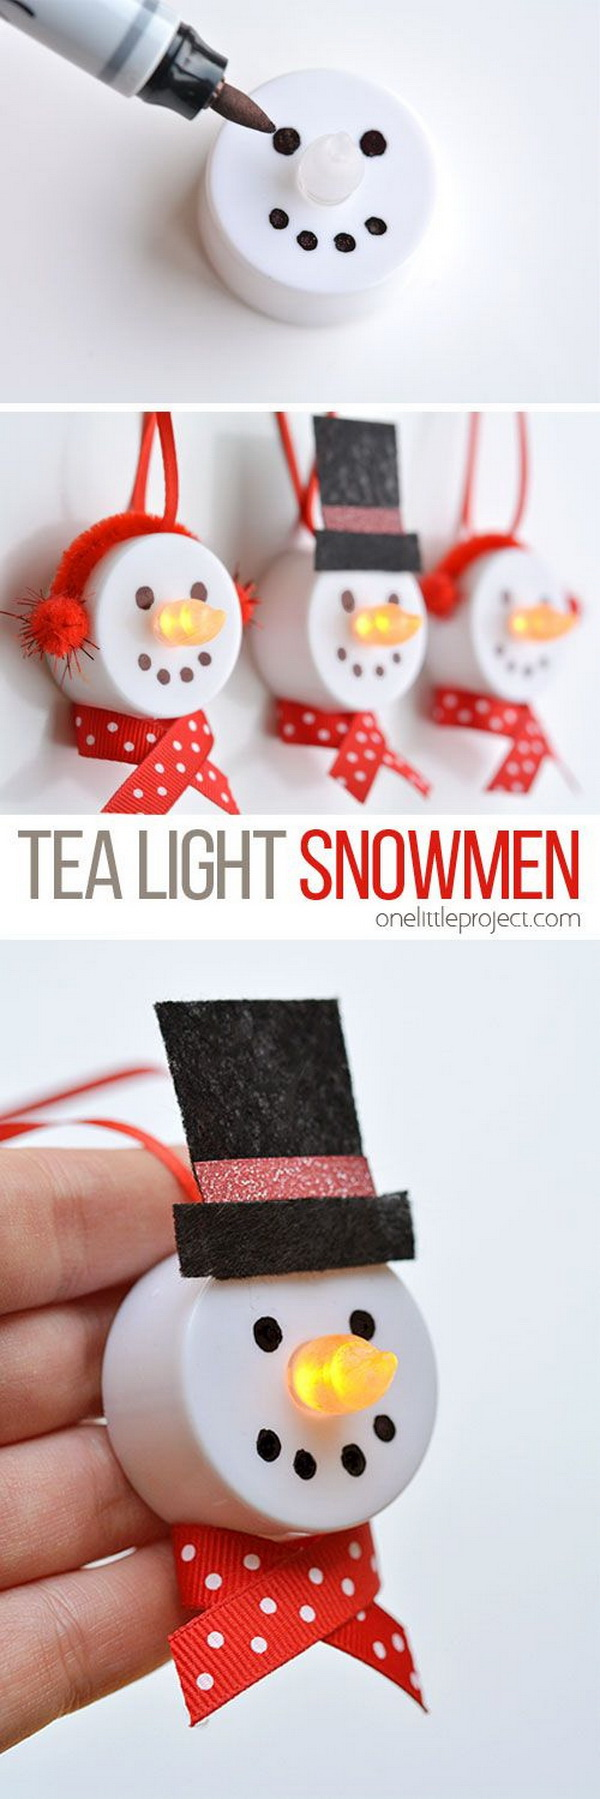 Tea Light Snowman Ornaments. These tea light snowman ornaments are really easy to make and they look ADORABLE!